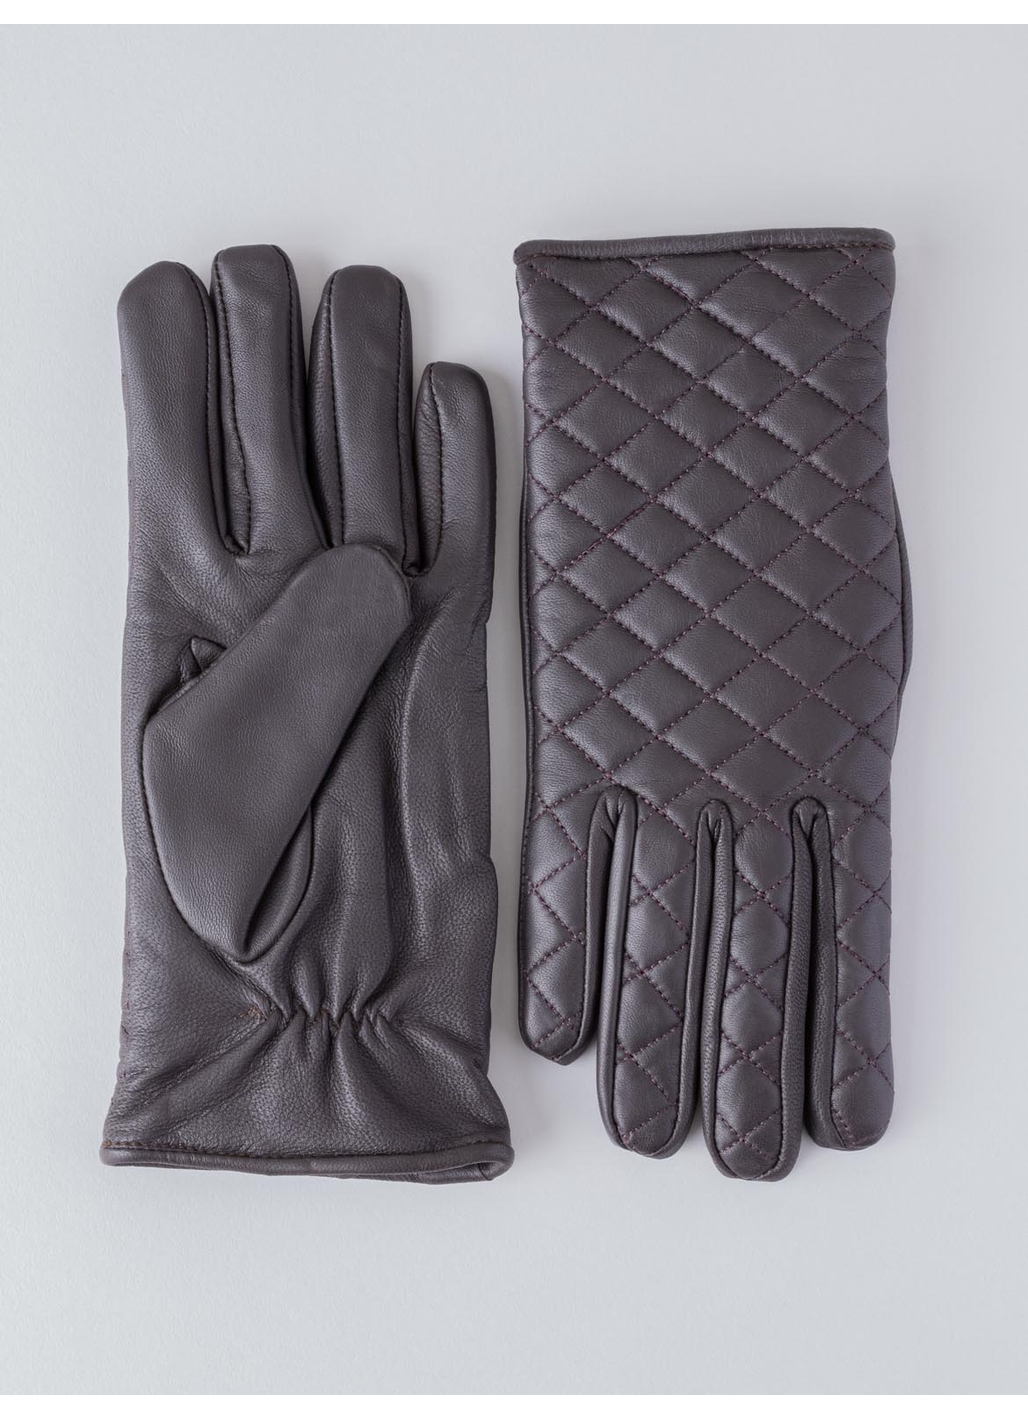 Laura Quilted Leather Gloves in Brown